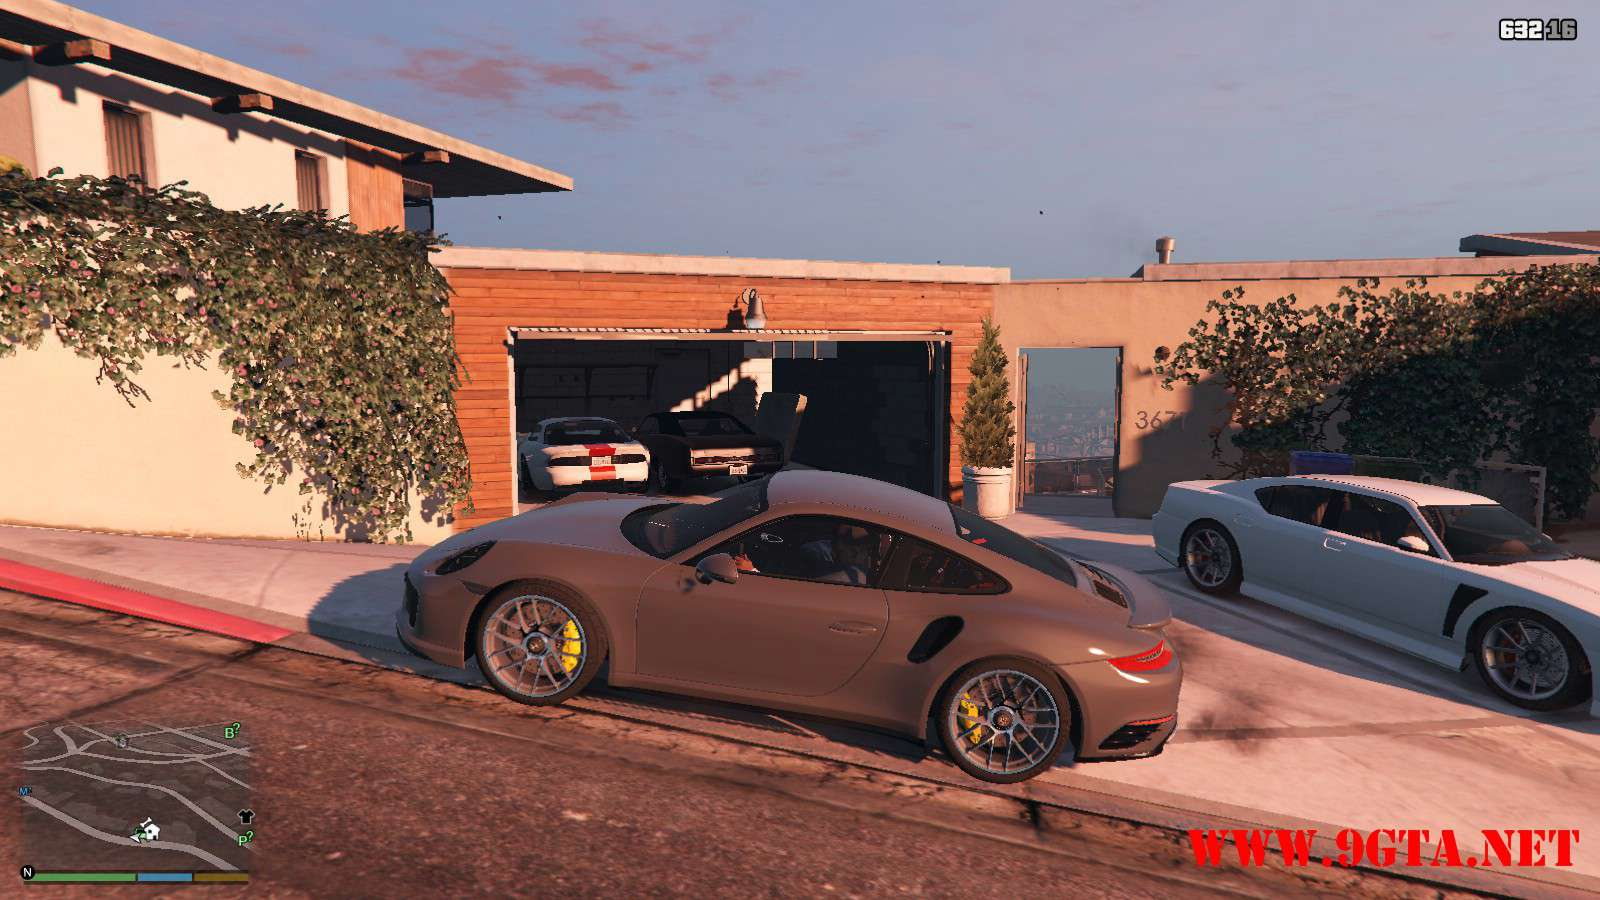 2016 Porsche 911 Turbo S GTA5 Mods (2)